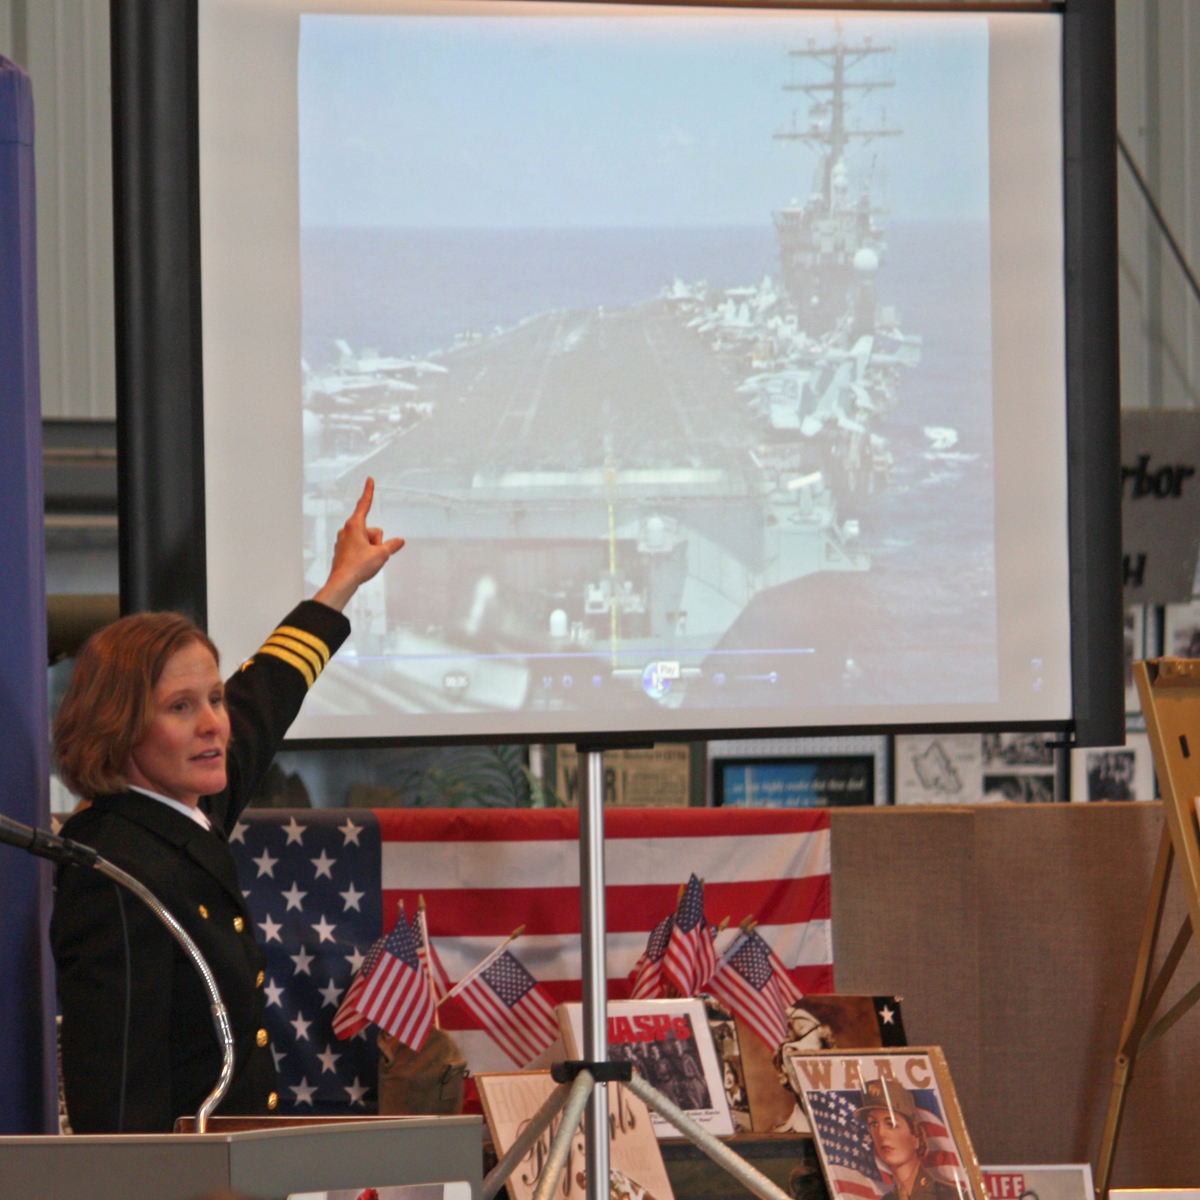 Cmdr. Valerie Overstreet describes landing on a carrier.